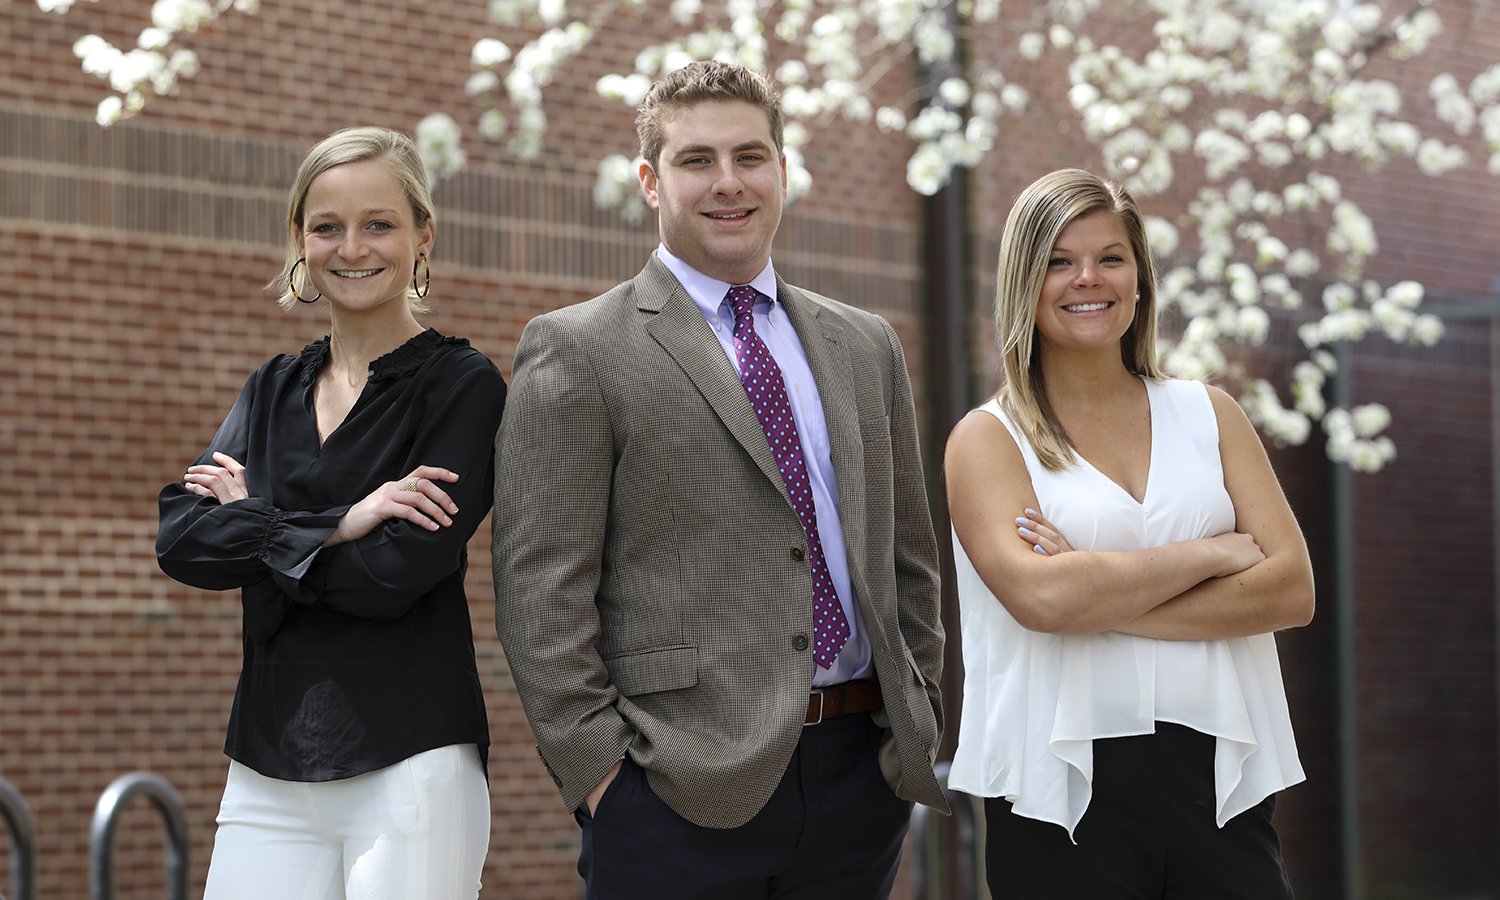 Preston Tansill '18, James Mula '18 and Annie O'Brien '18 pose for a photo. Tansill, Mula and O'Brien have all accepted positions at Aon in Boston, a division of Aon plc, the leading global provider of risk management services, insurance and reinsurance brokerage, and human resources solutions, consulting and outsourcing.